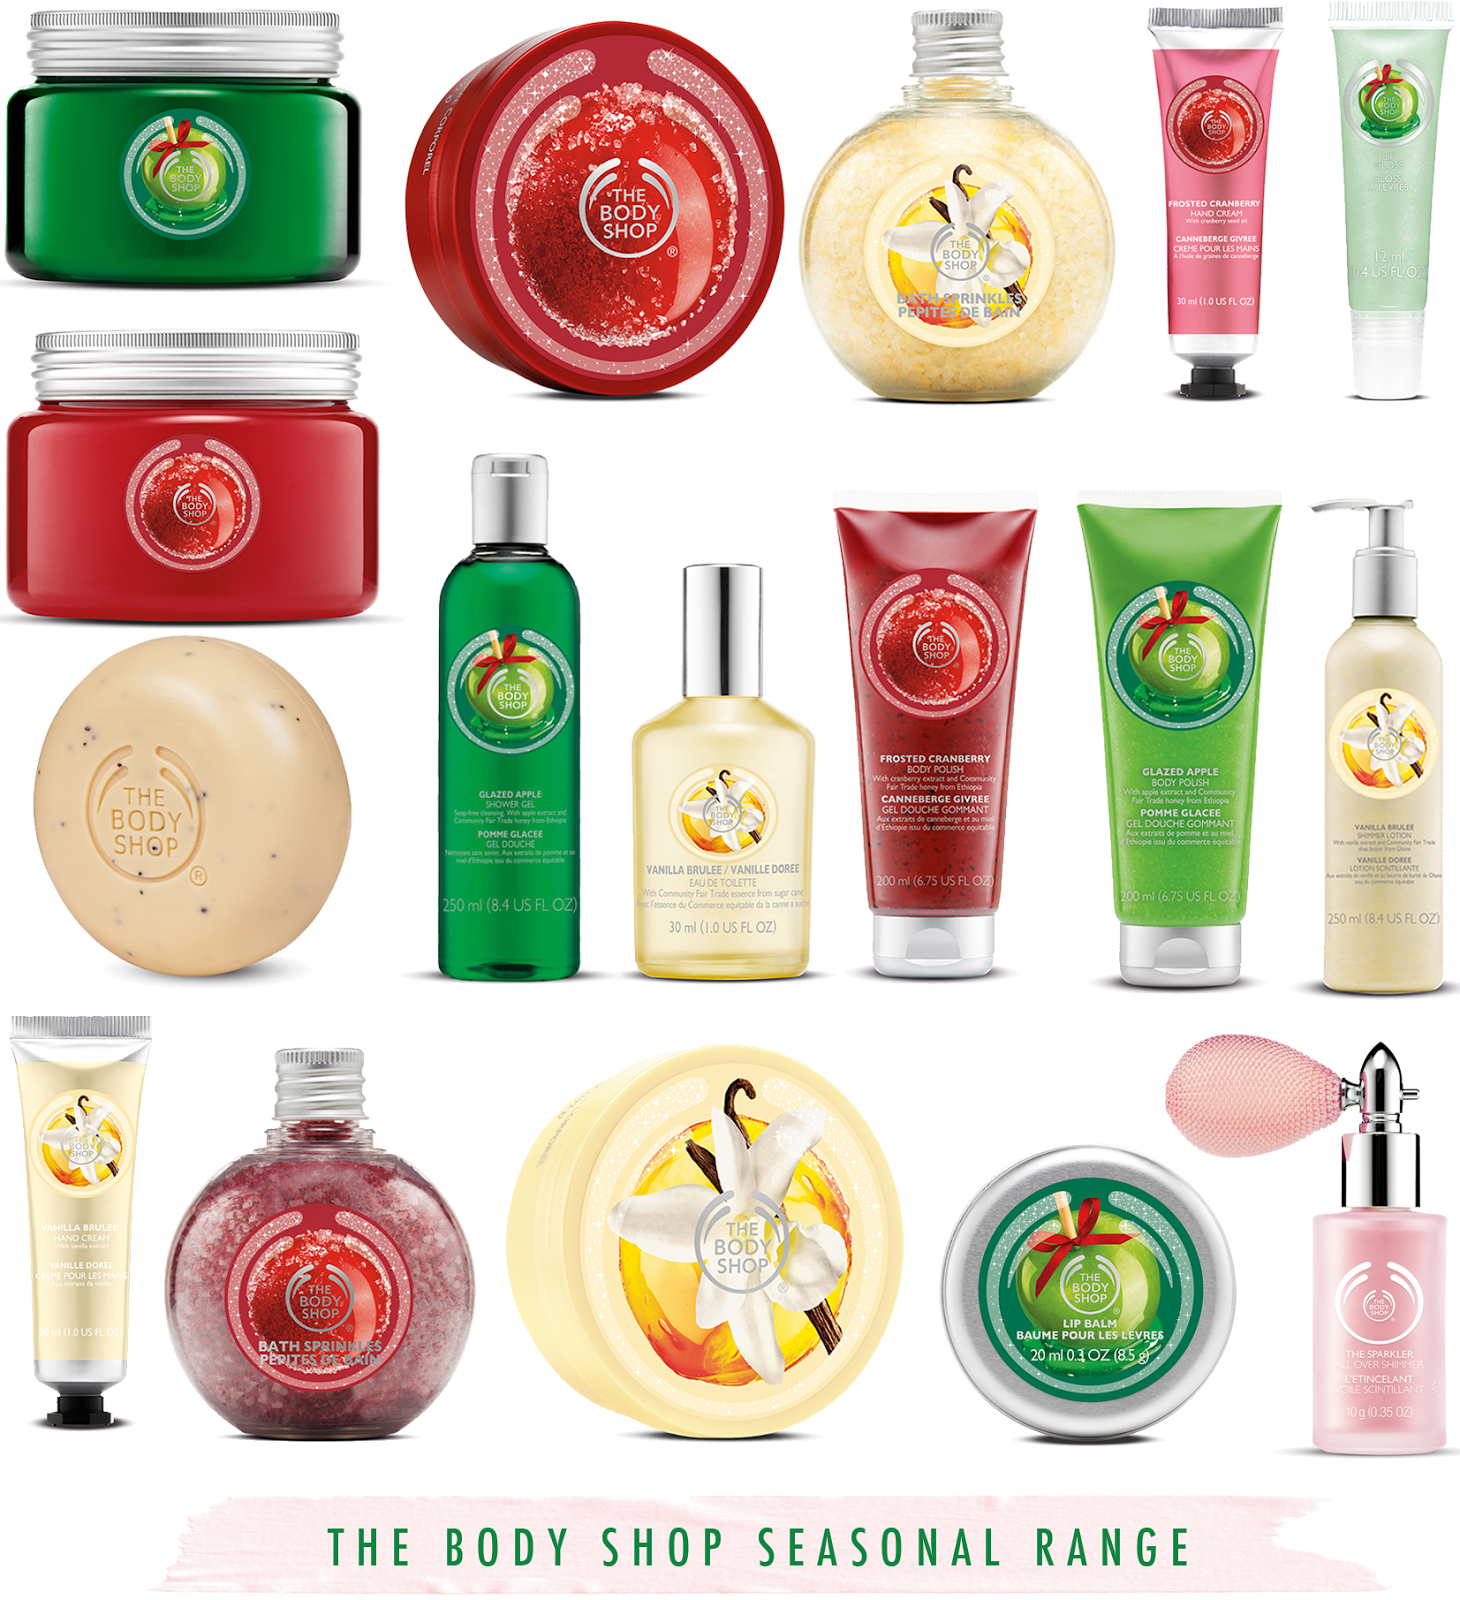 The Body Shop Christmas Range For 2014